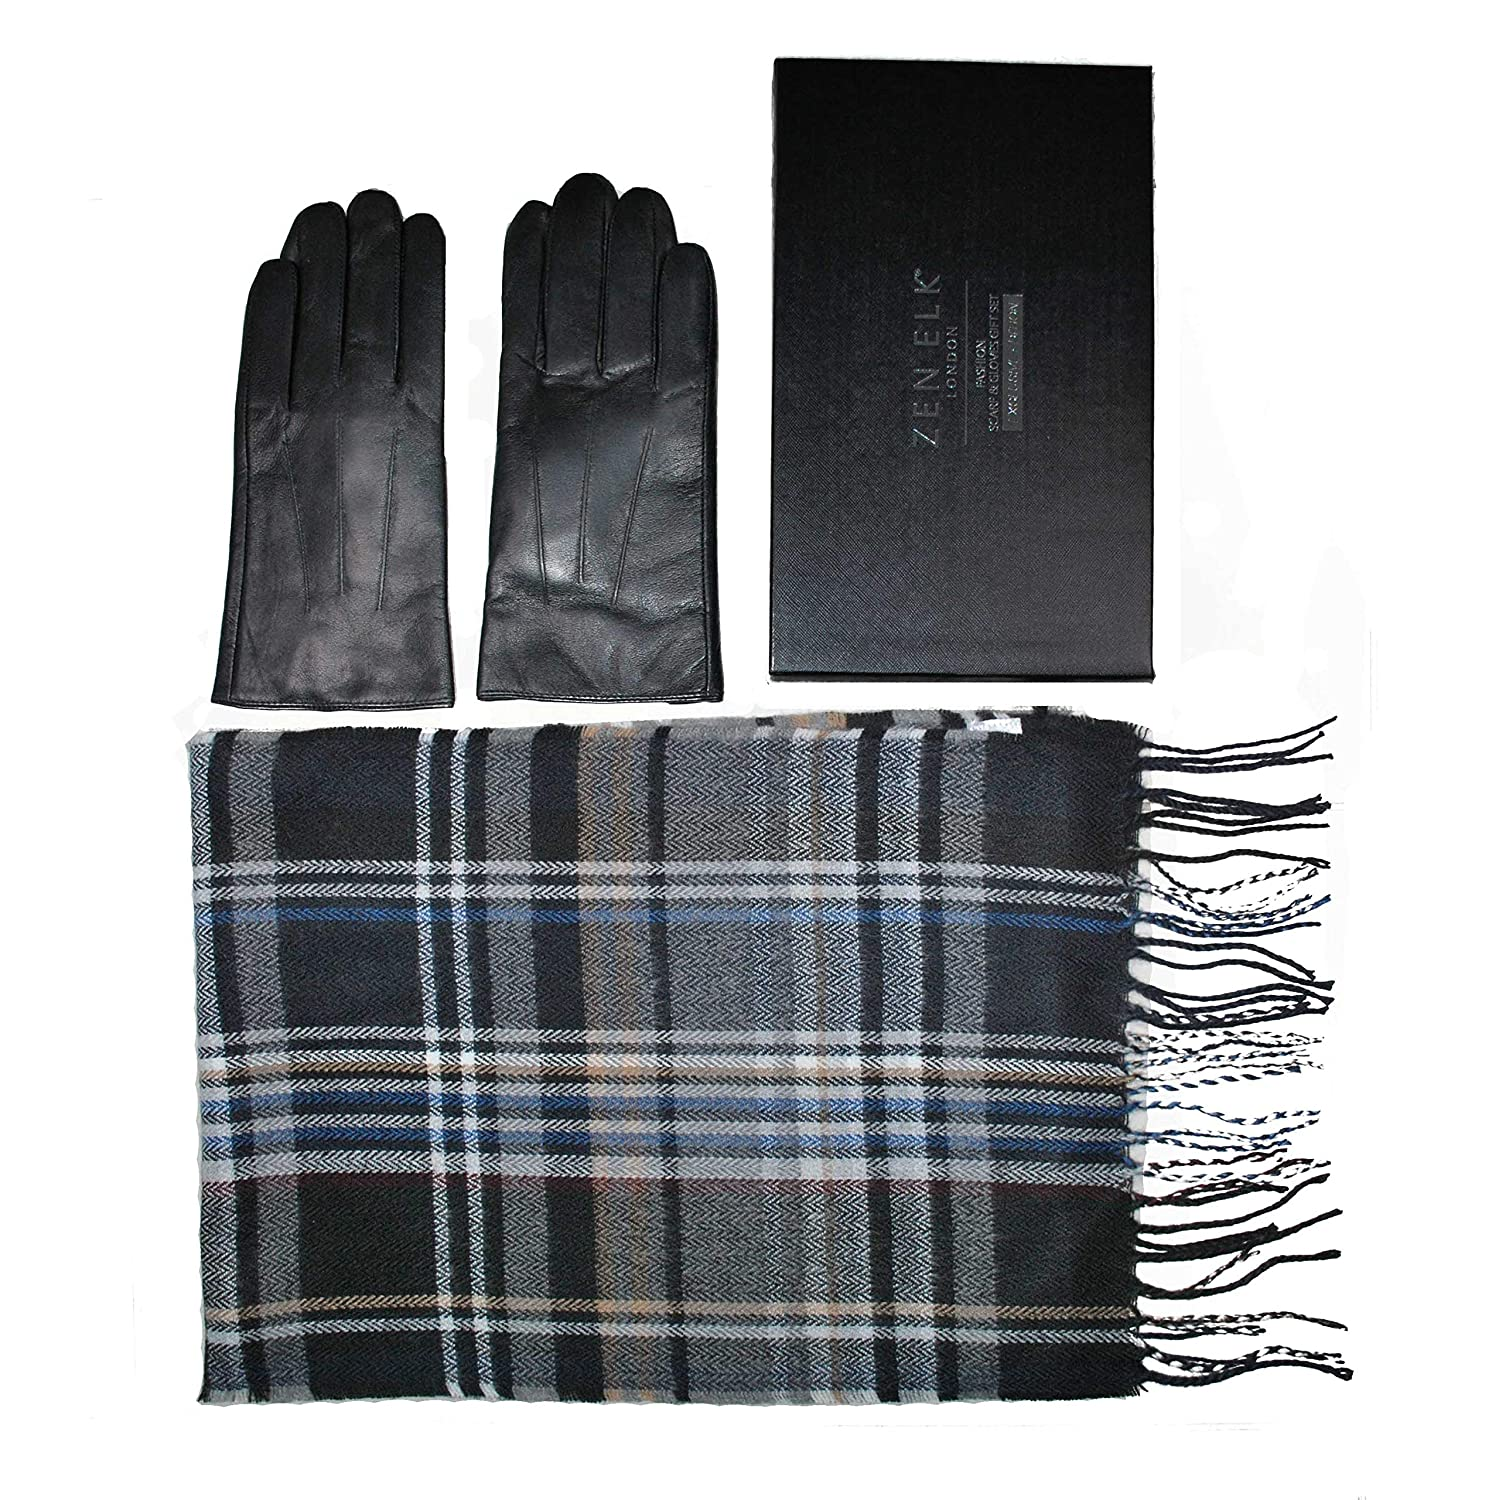 Men's Classic Sheep Leather Gloves and Check Scarf Box Set #85 (Medium)